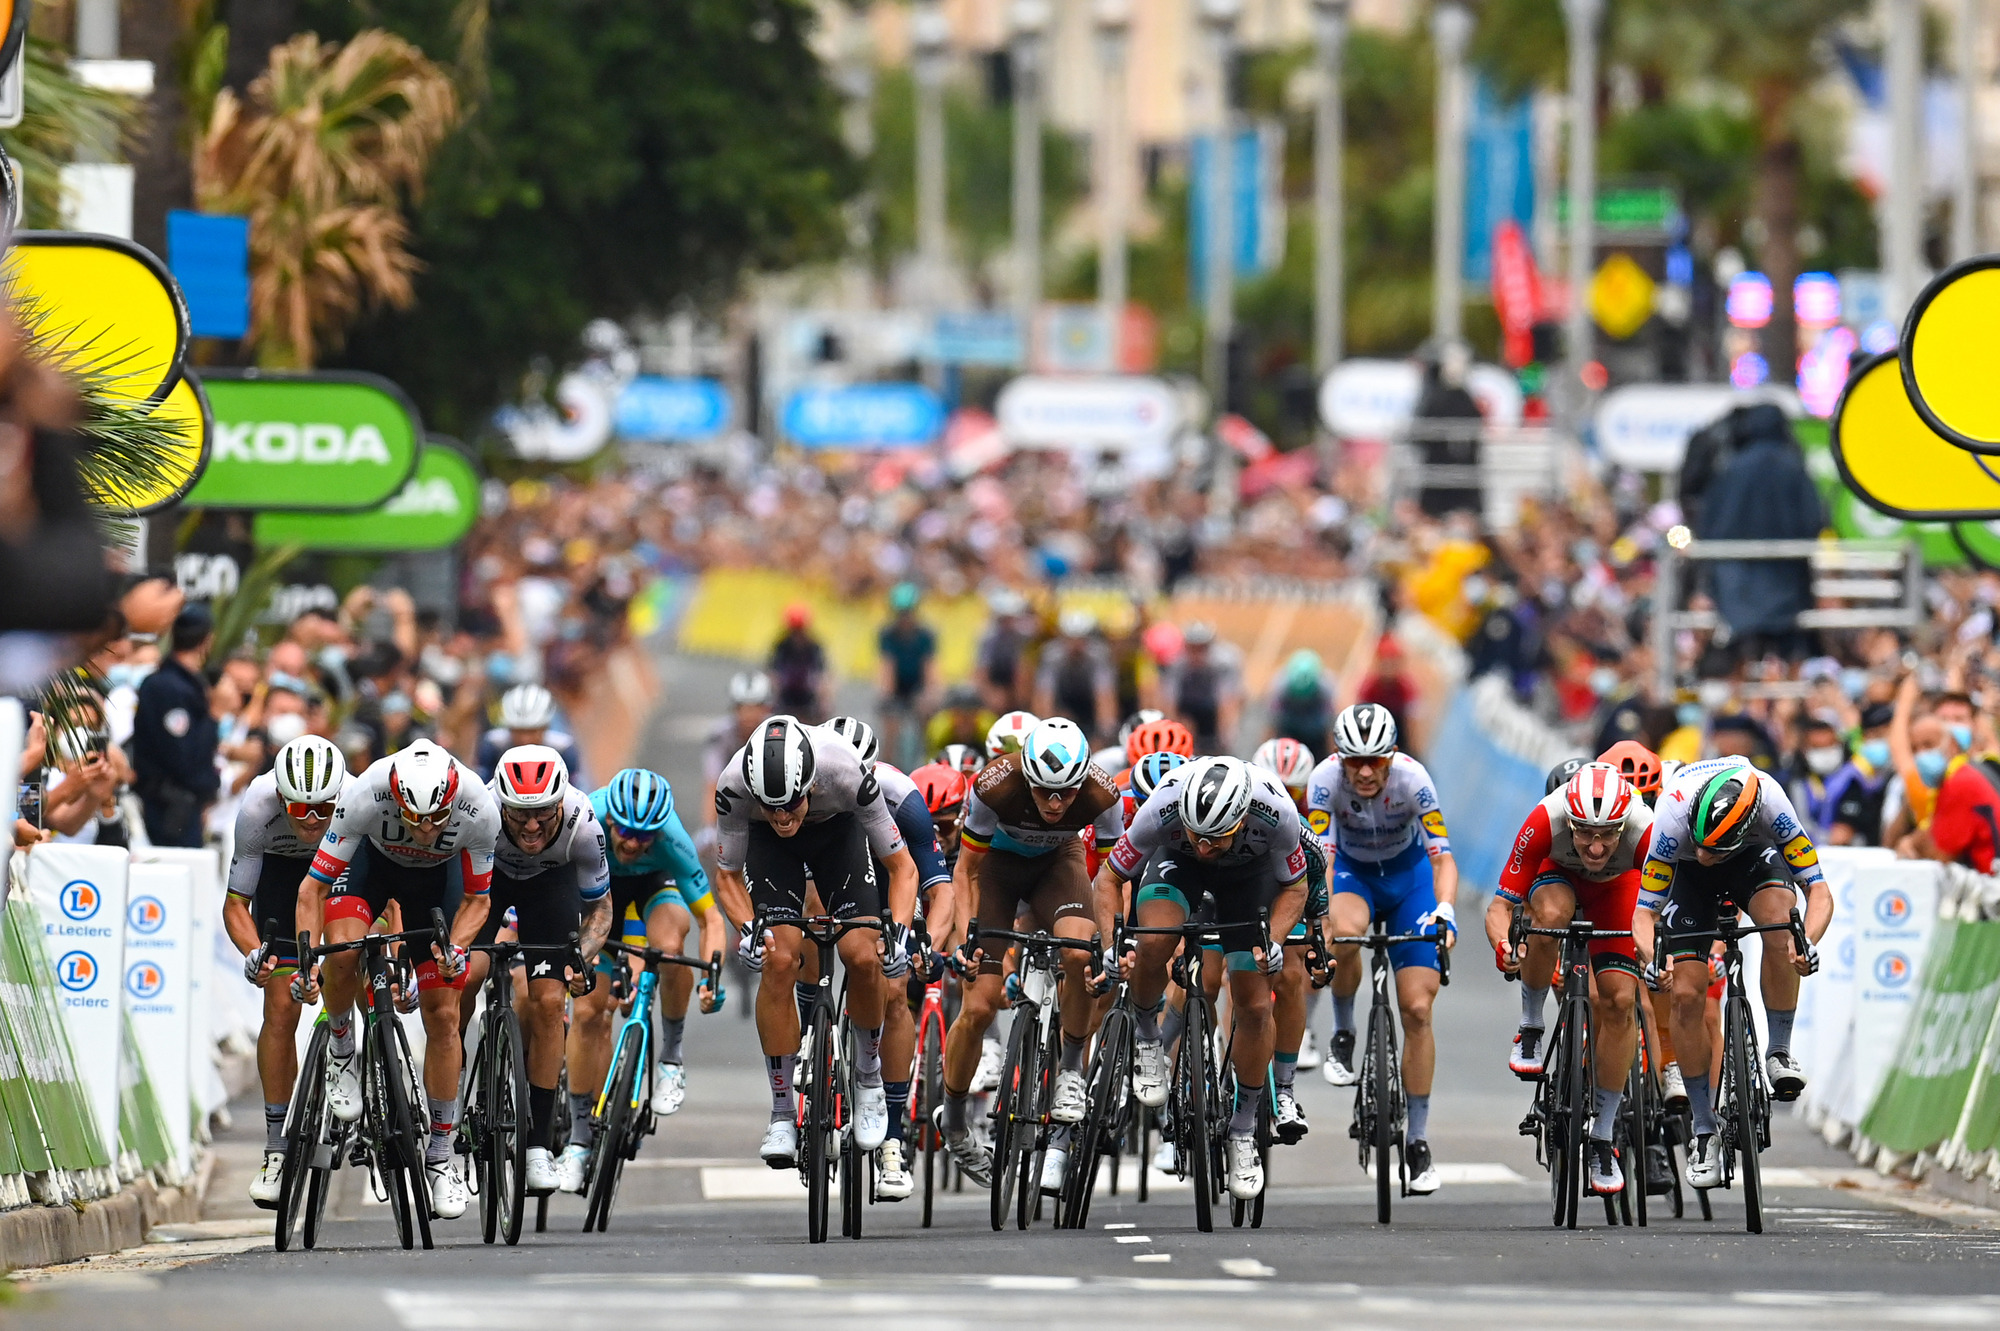 Tour de France 2020 107th Edition 1st stage Nice Nice 156 km 29082020 Alexander Kristoff NOR UAE Team Emirates Peter Sagan SVK Bora Hansgrohe Sam Bennett IRL Deceuninck Quick Step Giacomo Nizzolo ITA NTT Pro Cycling Cees Bol NED Team Sunweb photo POOL Vincent KalutPNBettiniPhoto2020